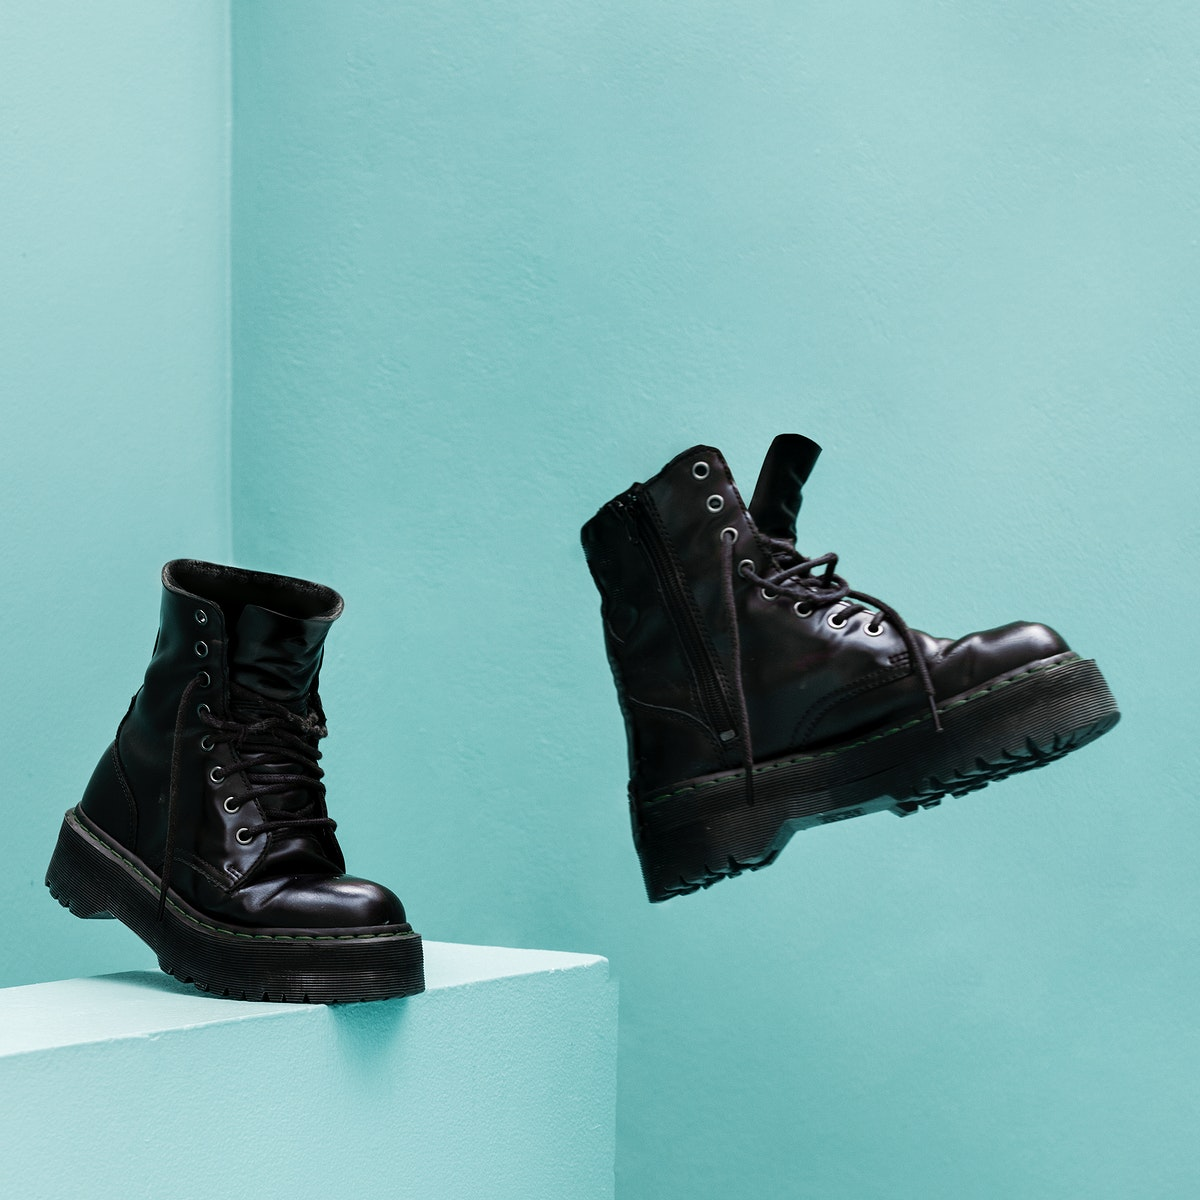 Cool combat boots with blue background